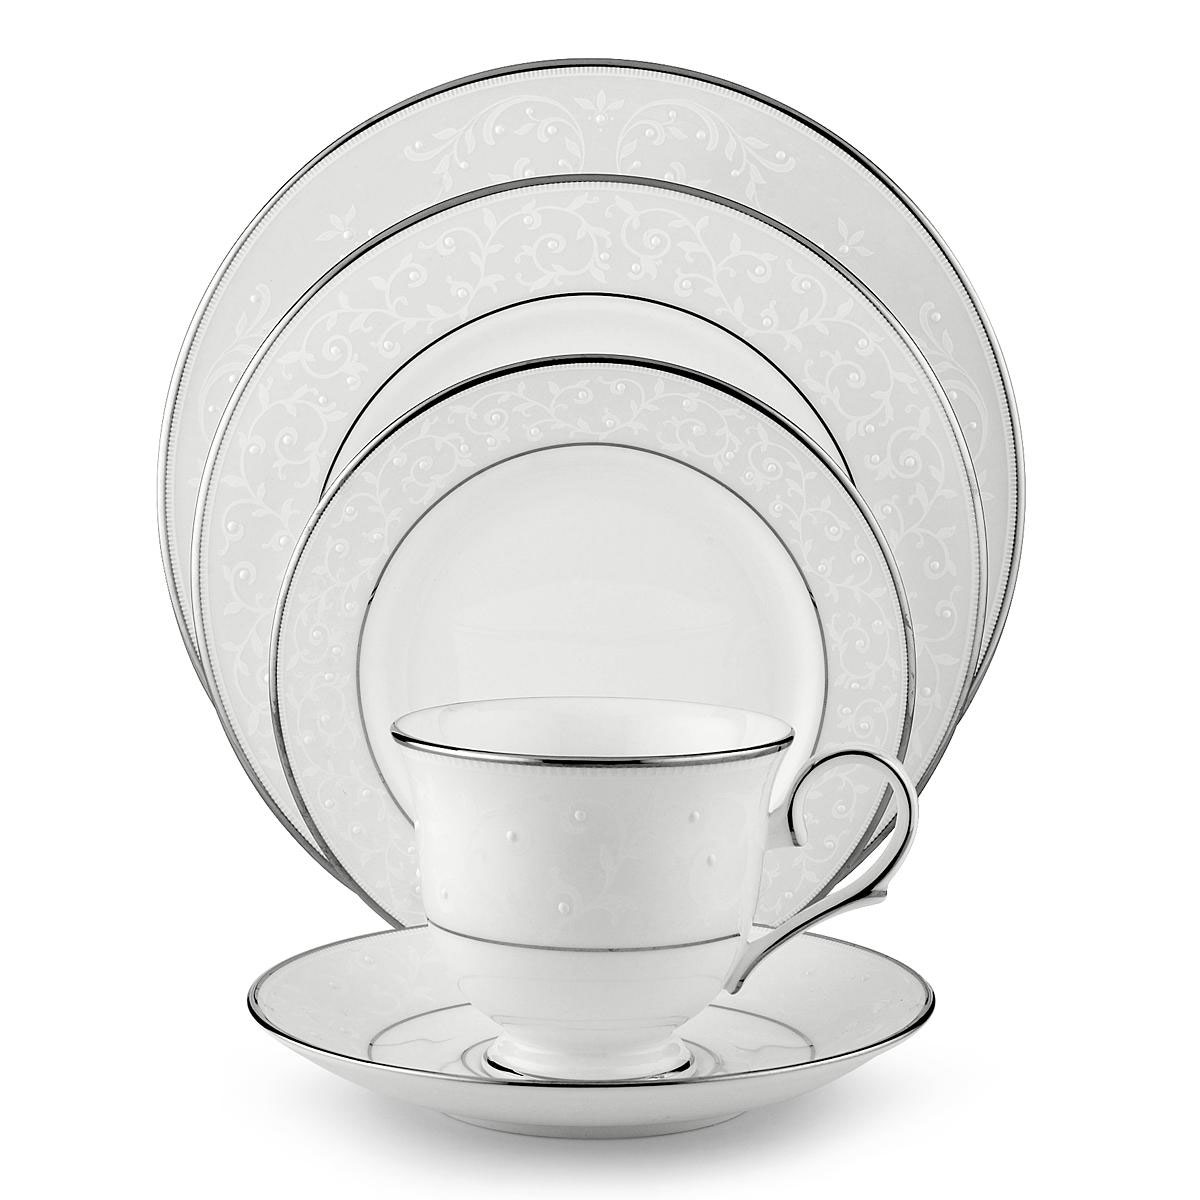 Lenox Opal Innocence, 5 Piece Place Setting